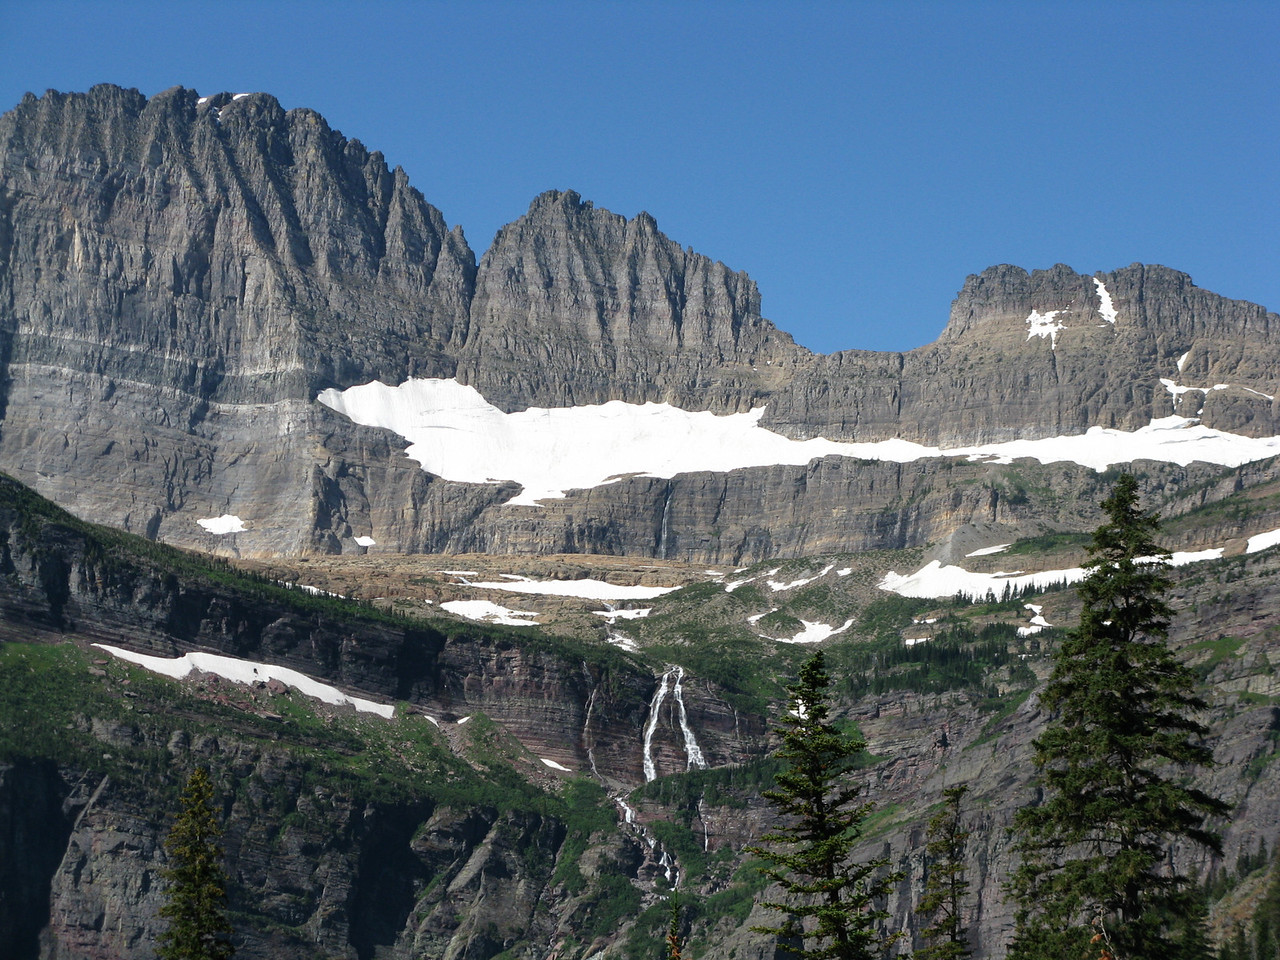 We could see these twin falls from the road as we drove to the Many Glacier Hotel.  It is named Grinnell Falls.